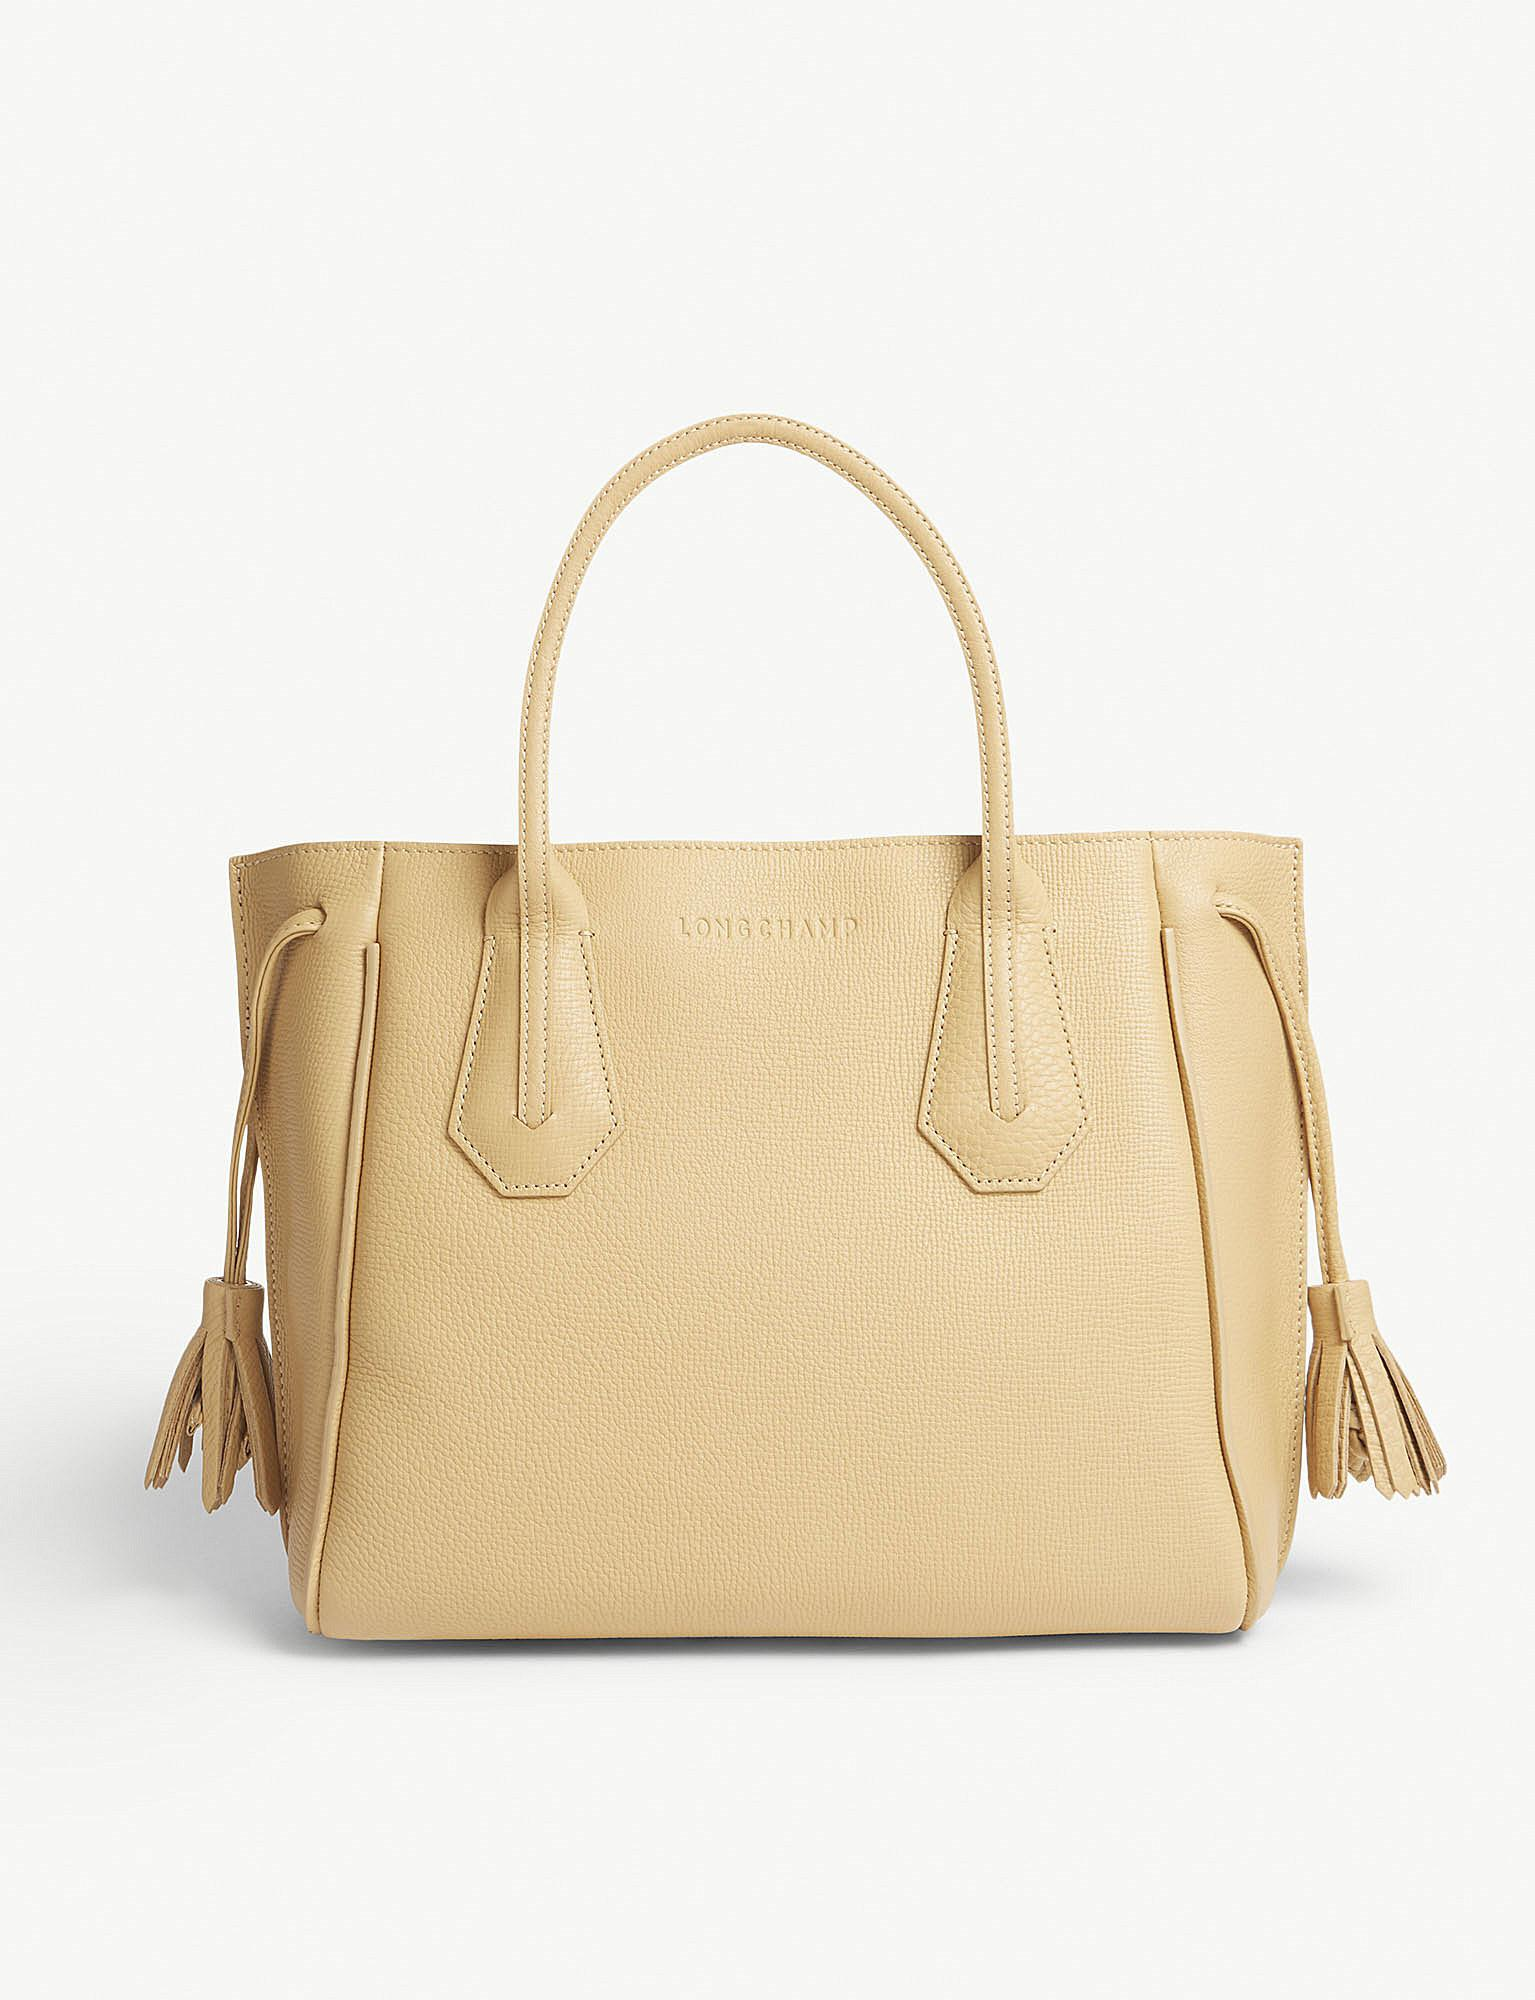 Longchamp Penelope Soft Leather Tote Bag In Natural Lyst